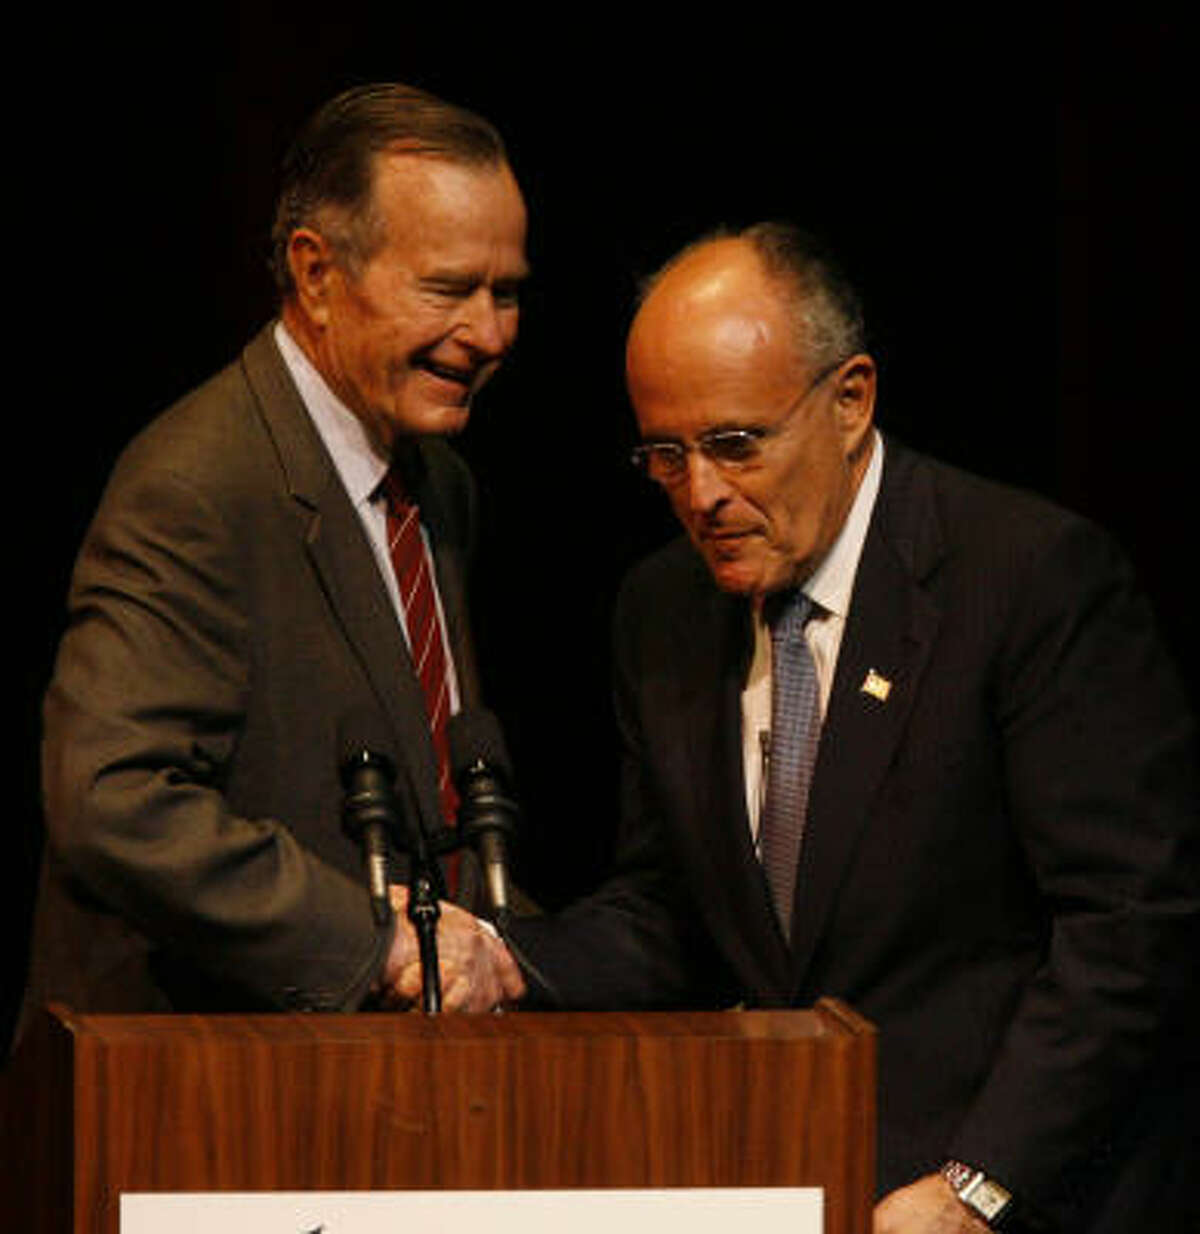 After an introduction speech, former President George Bush, left, shakes hands with GOP presidential frontrunner and former New York City mayor Rudy Giuliani at Texas A&M as part of the Wiley Lecture Series on Friday.